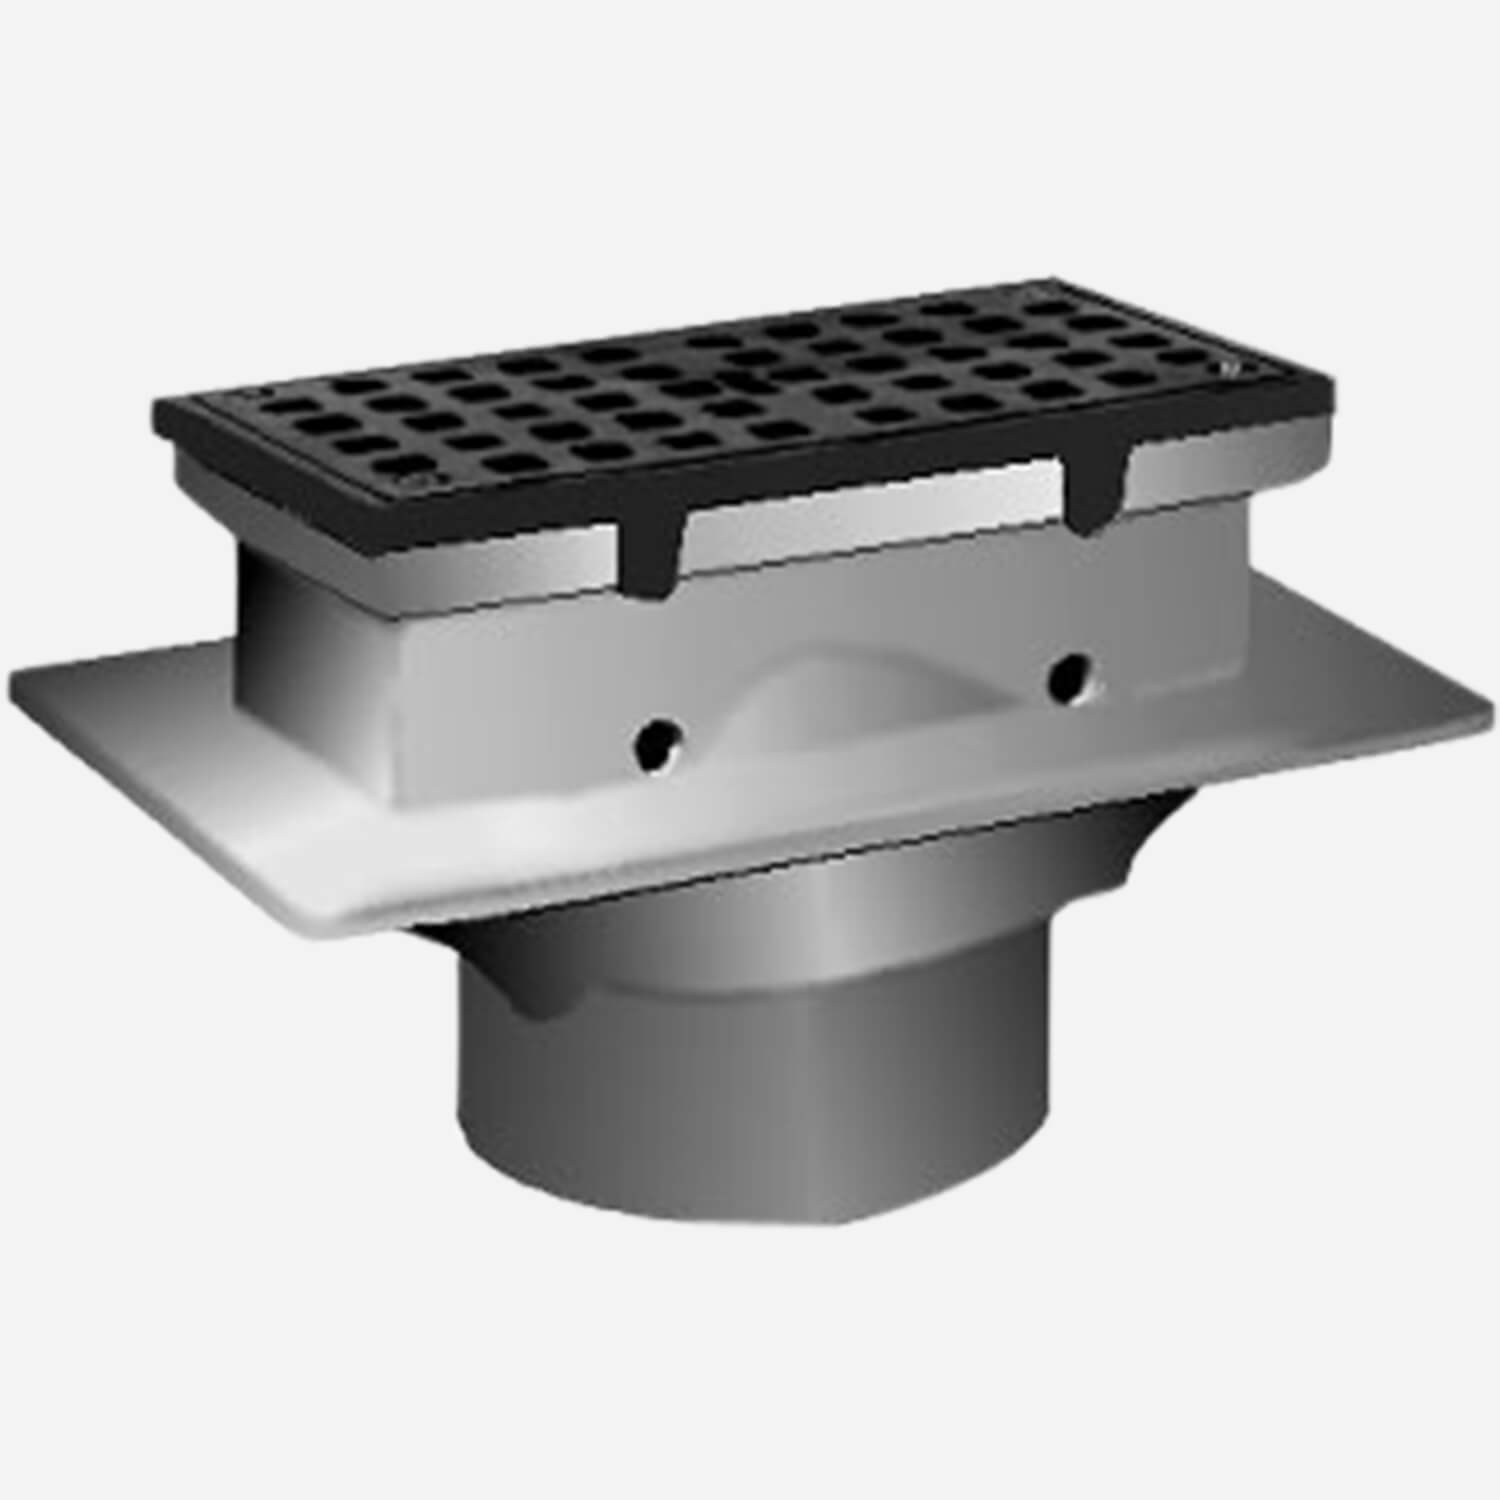 Sani-Ceptor® Sanitary Acid Resistant Coated Sanitary Floor and Indirect Waste Drains with Shallow Receptor and Rectangular Nickel Bronze Top